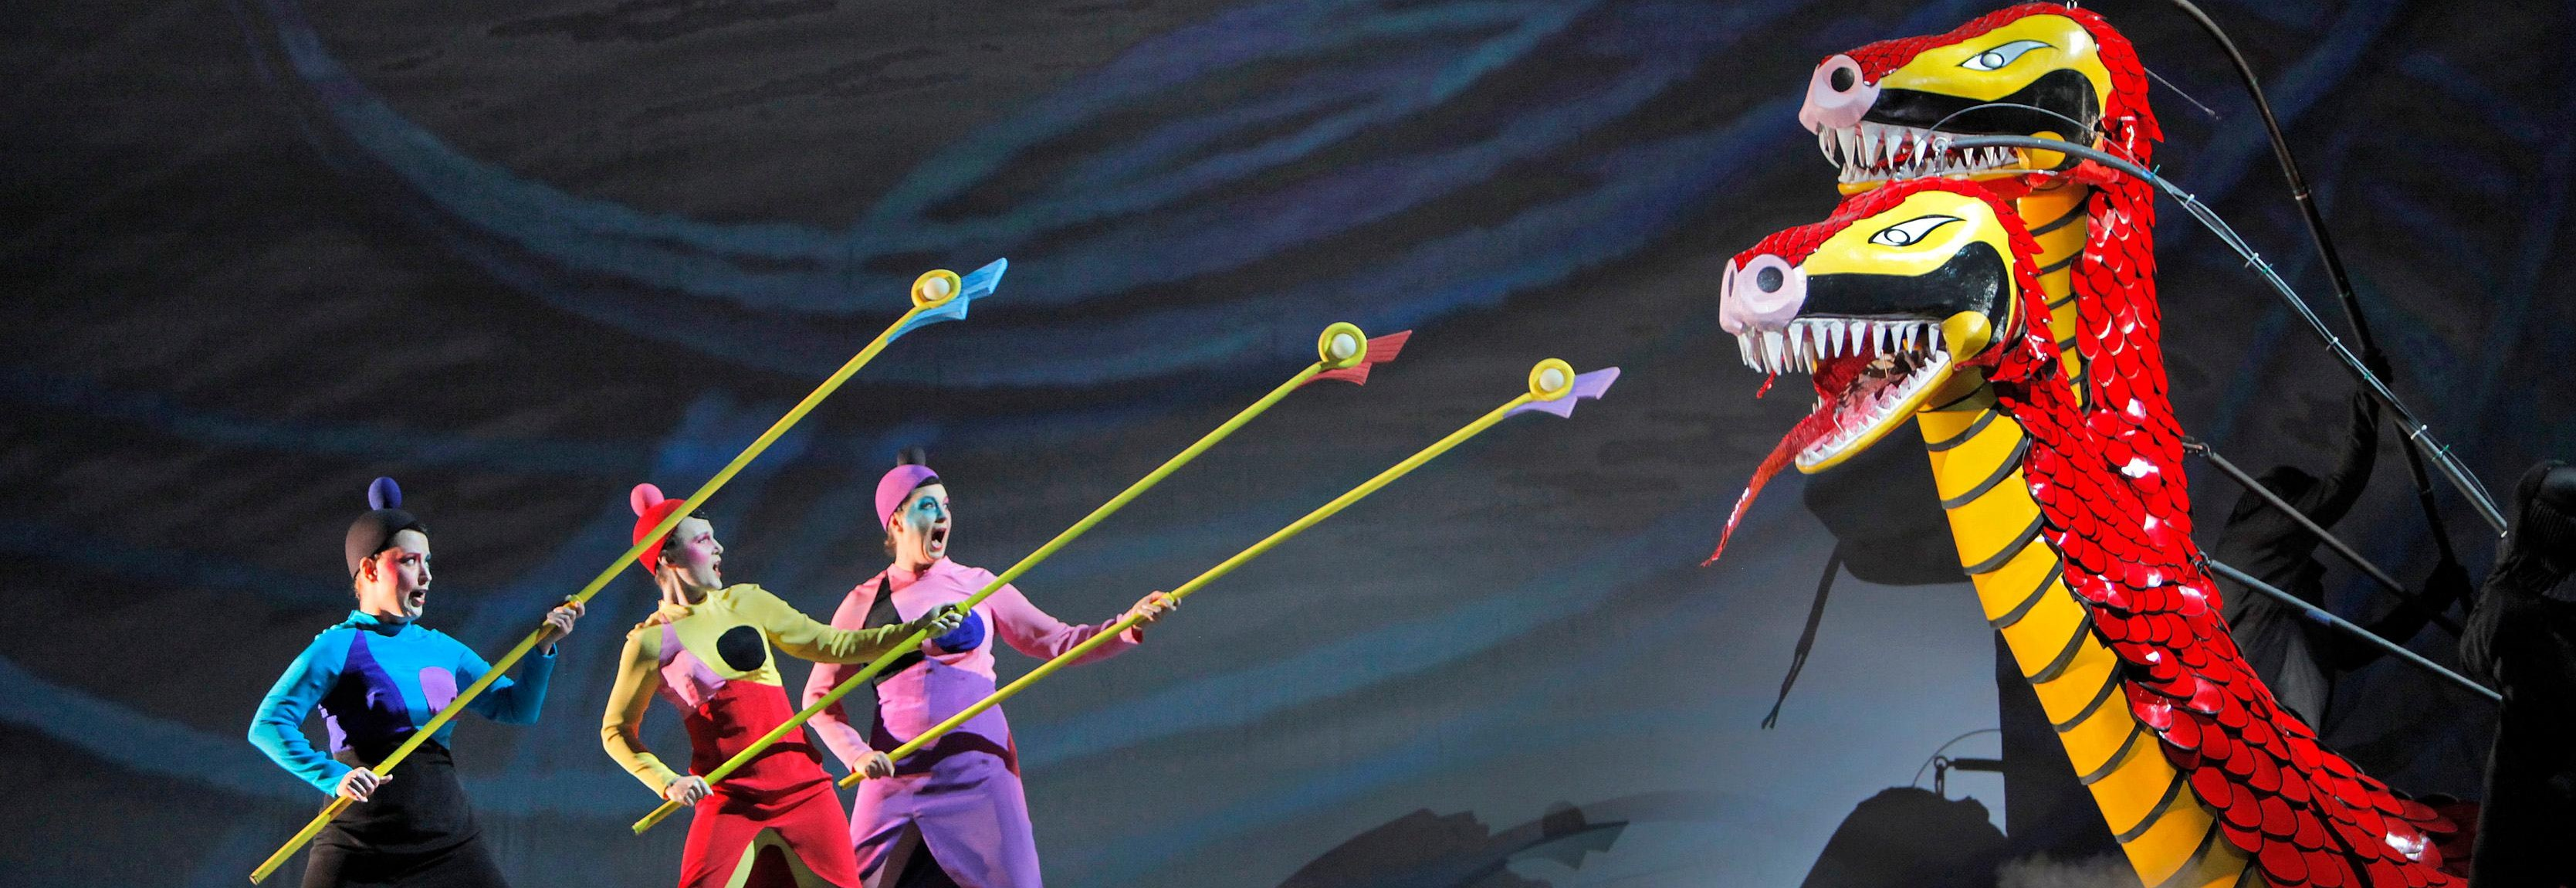 MAGIC INDEED: Lyric brings designs by world-renowned artist to Kauffman stage